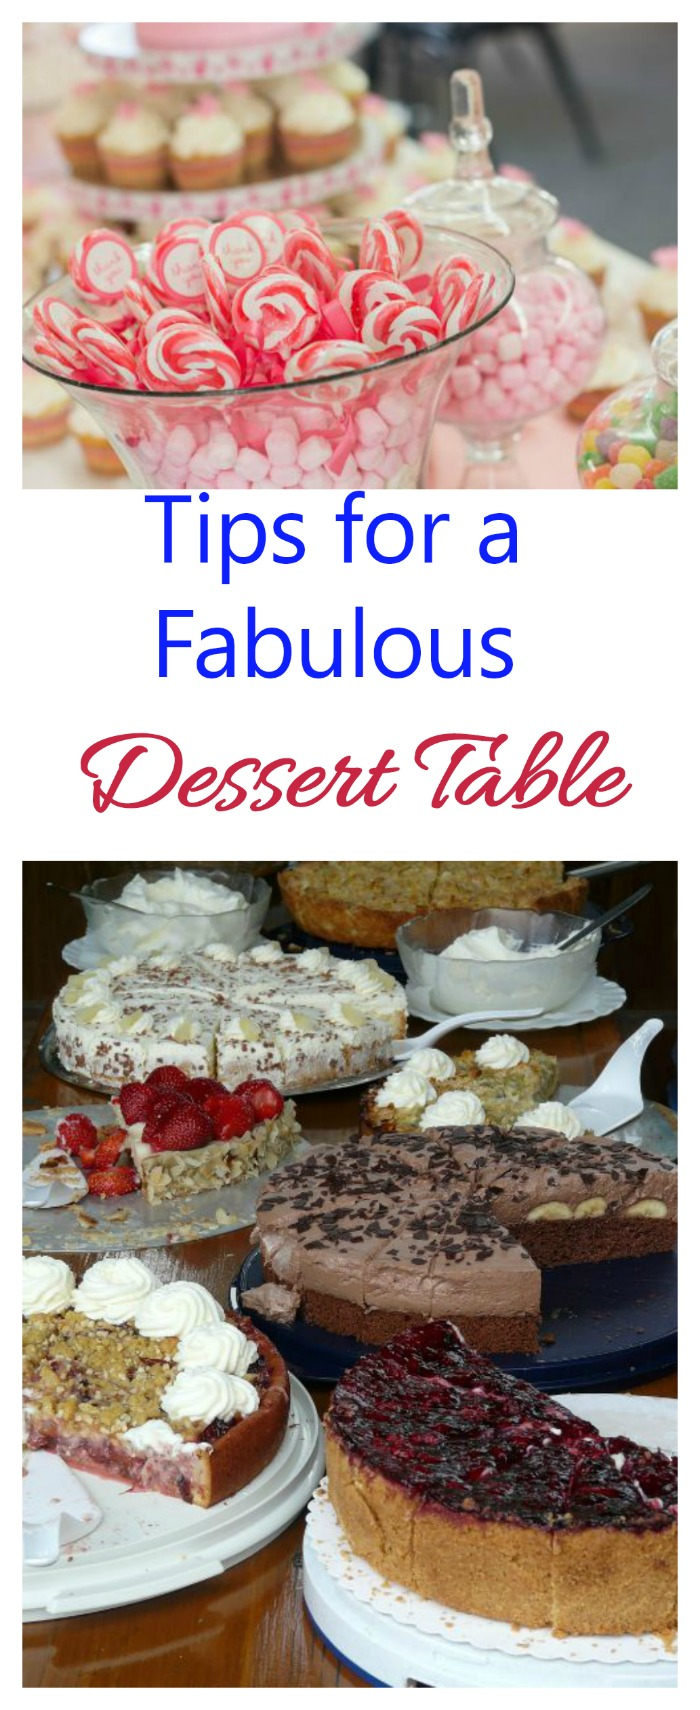 These 16 awesome dessert table tips will make your next party one to remember.